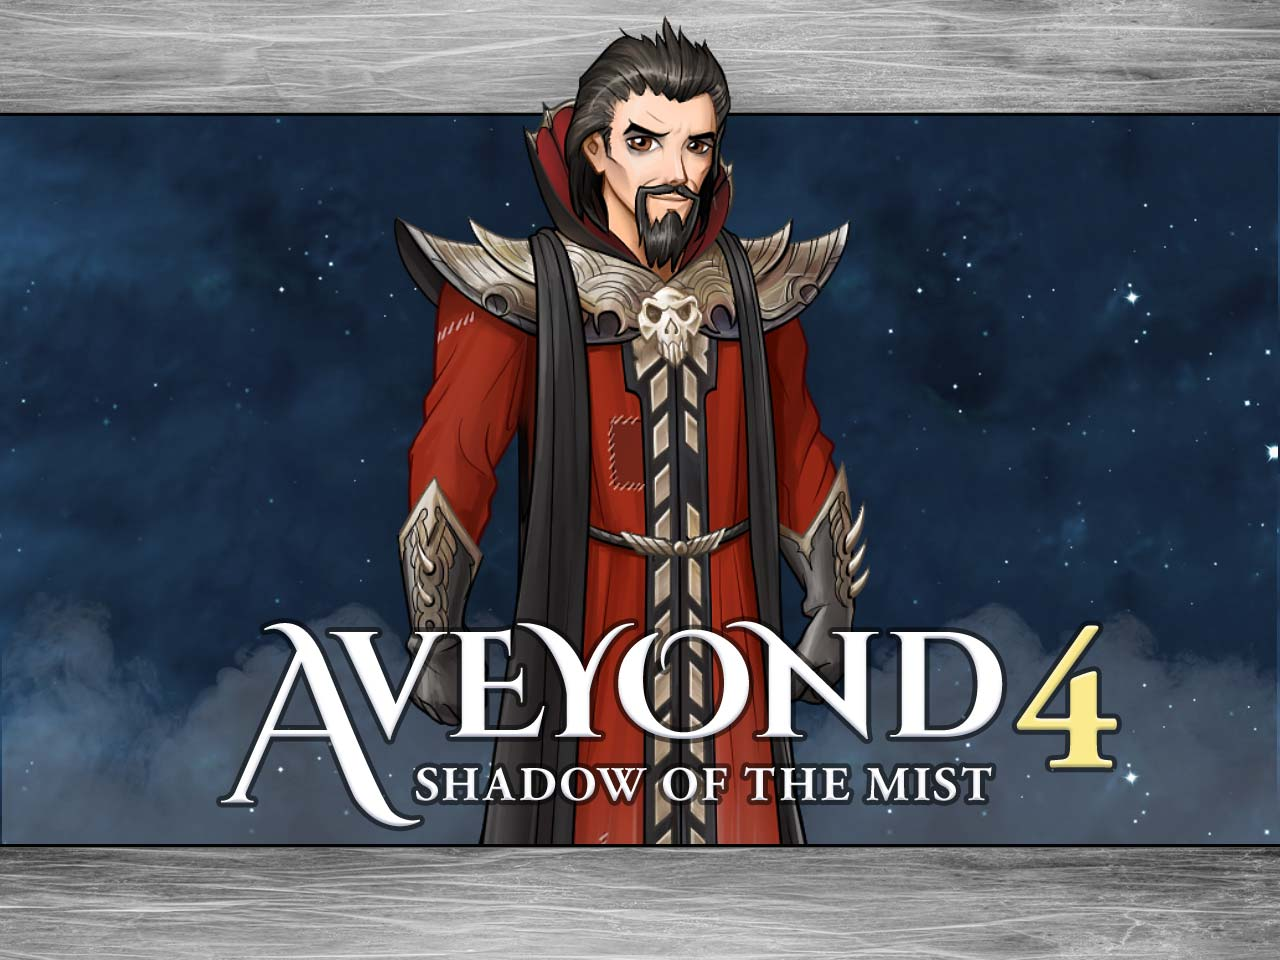 aveyond gates of night free full version download